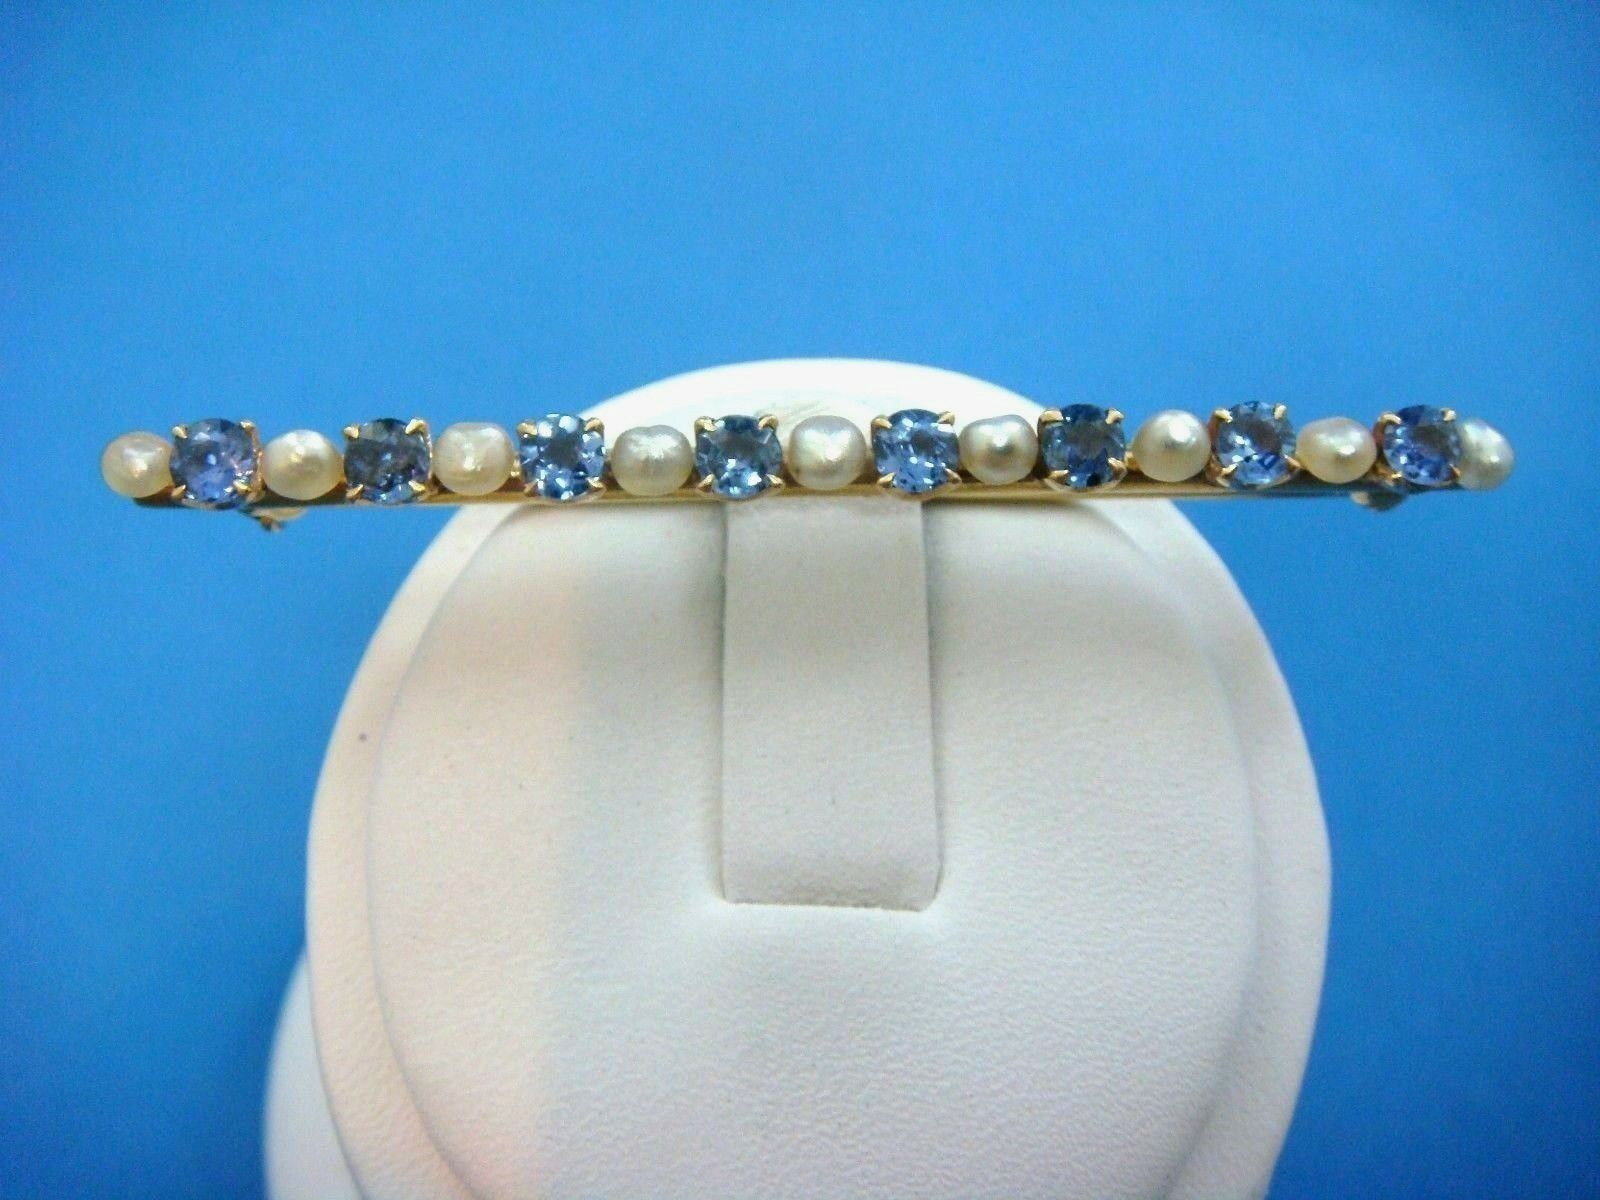 f85e61f20 ANTIQUE SAPPHIRES AND PEARLS BROOCH-BAR